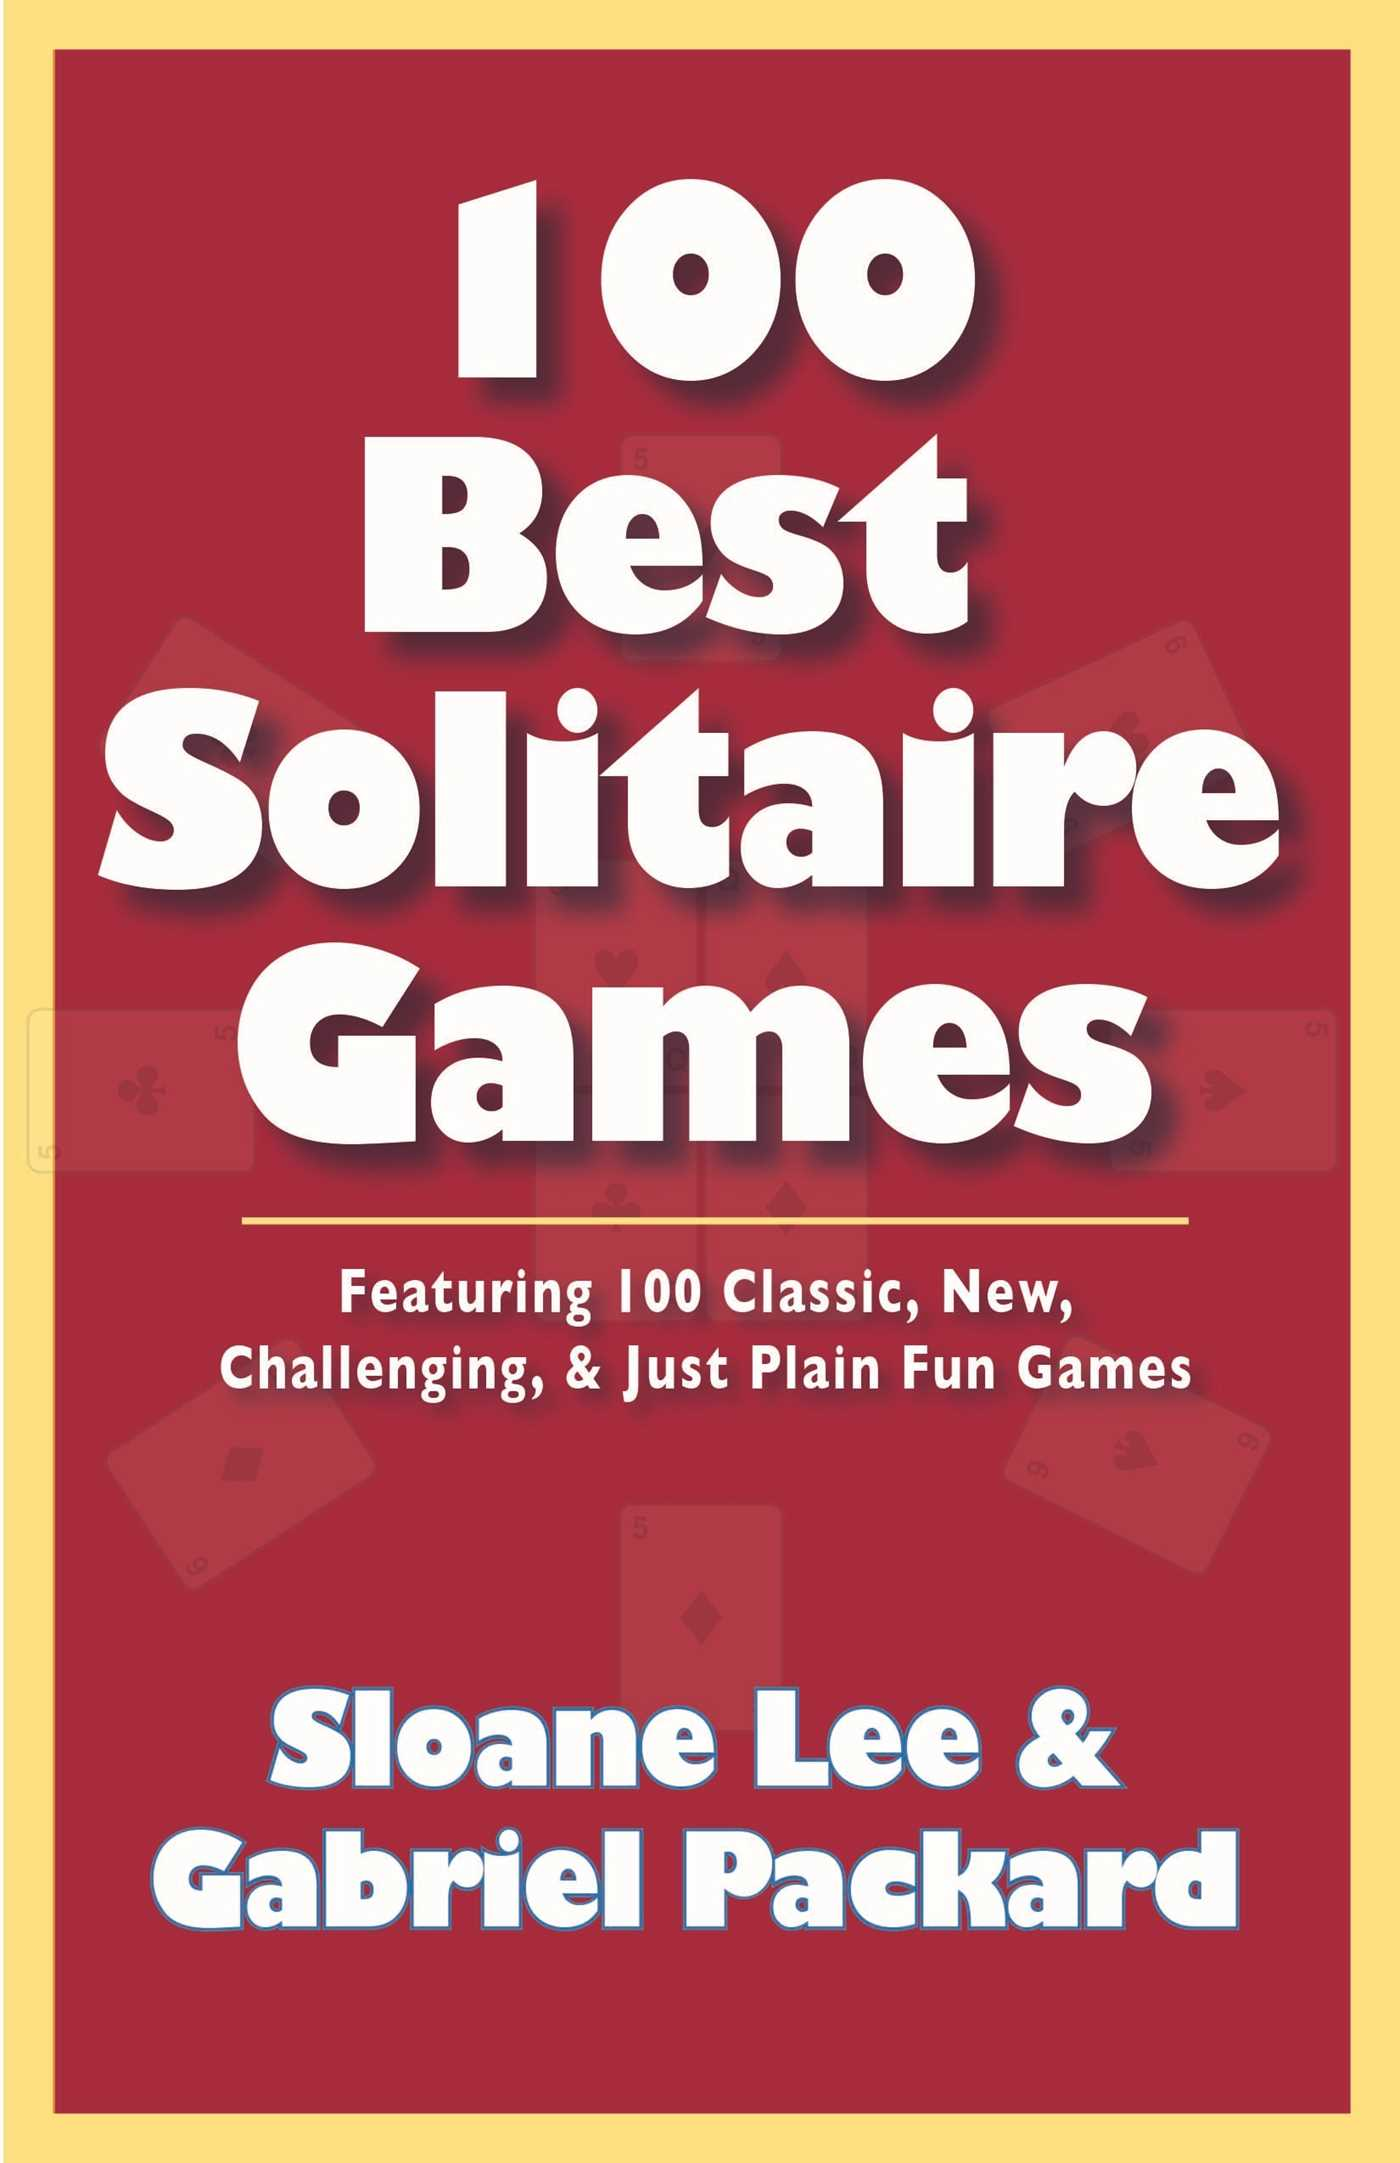 100-best-solitaire-games-9781580423267_hr